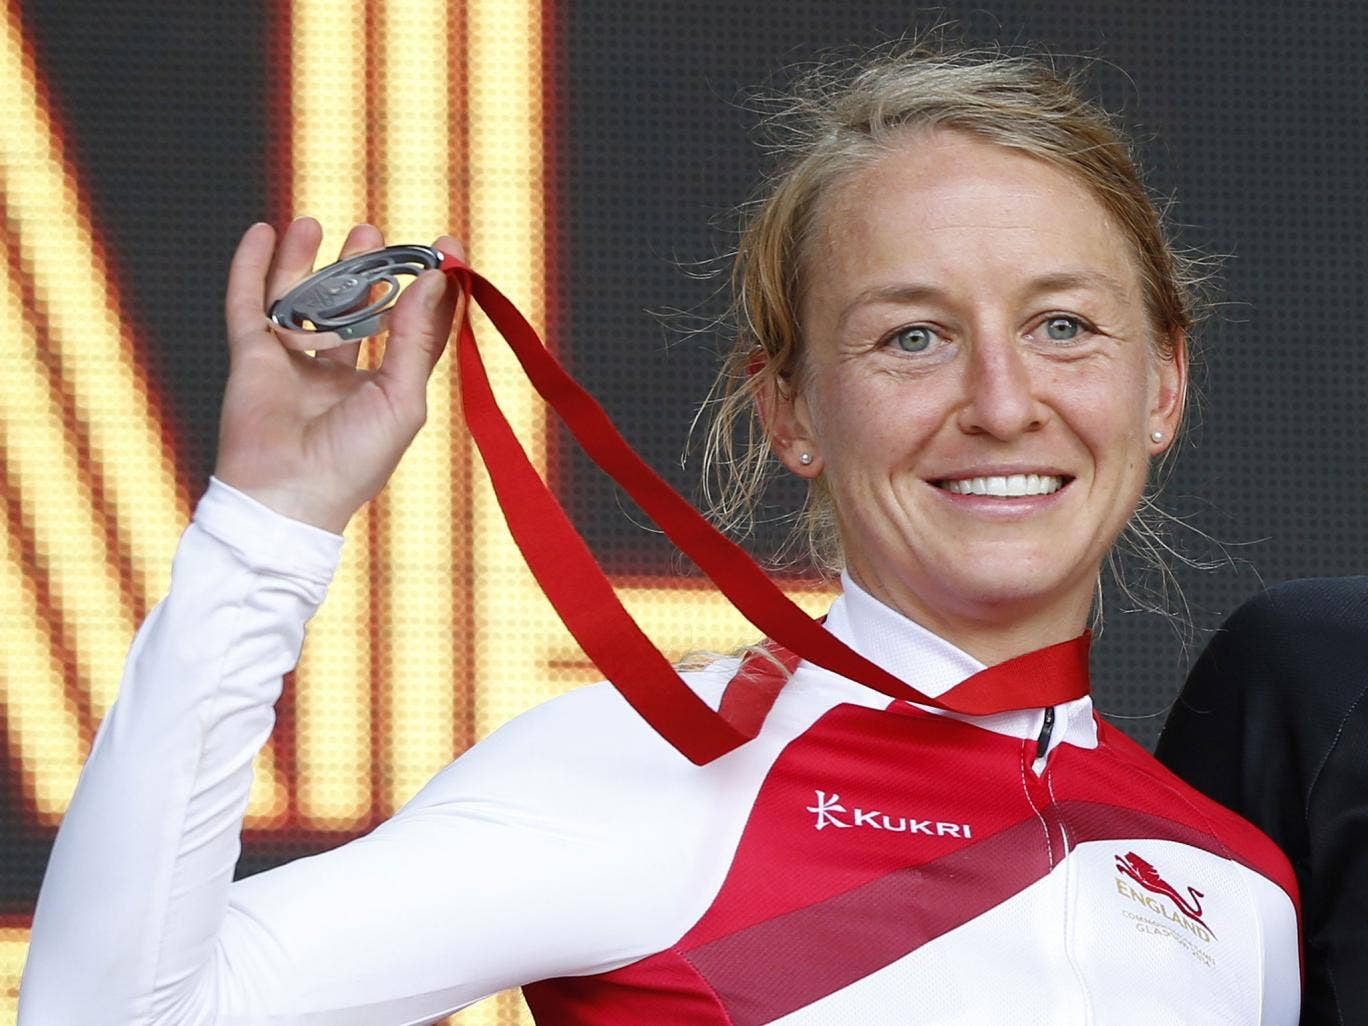 England's Emma Pooley won silver in the women's time trial